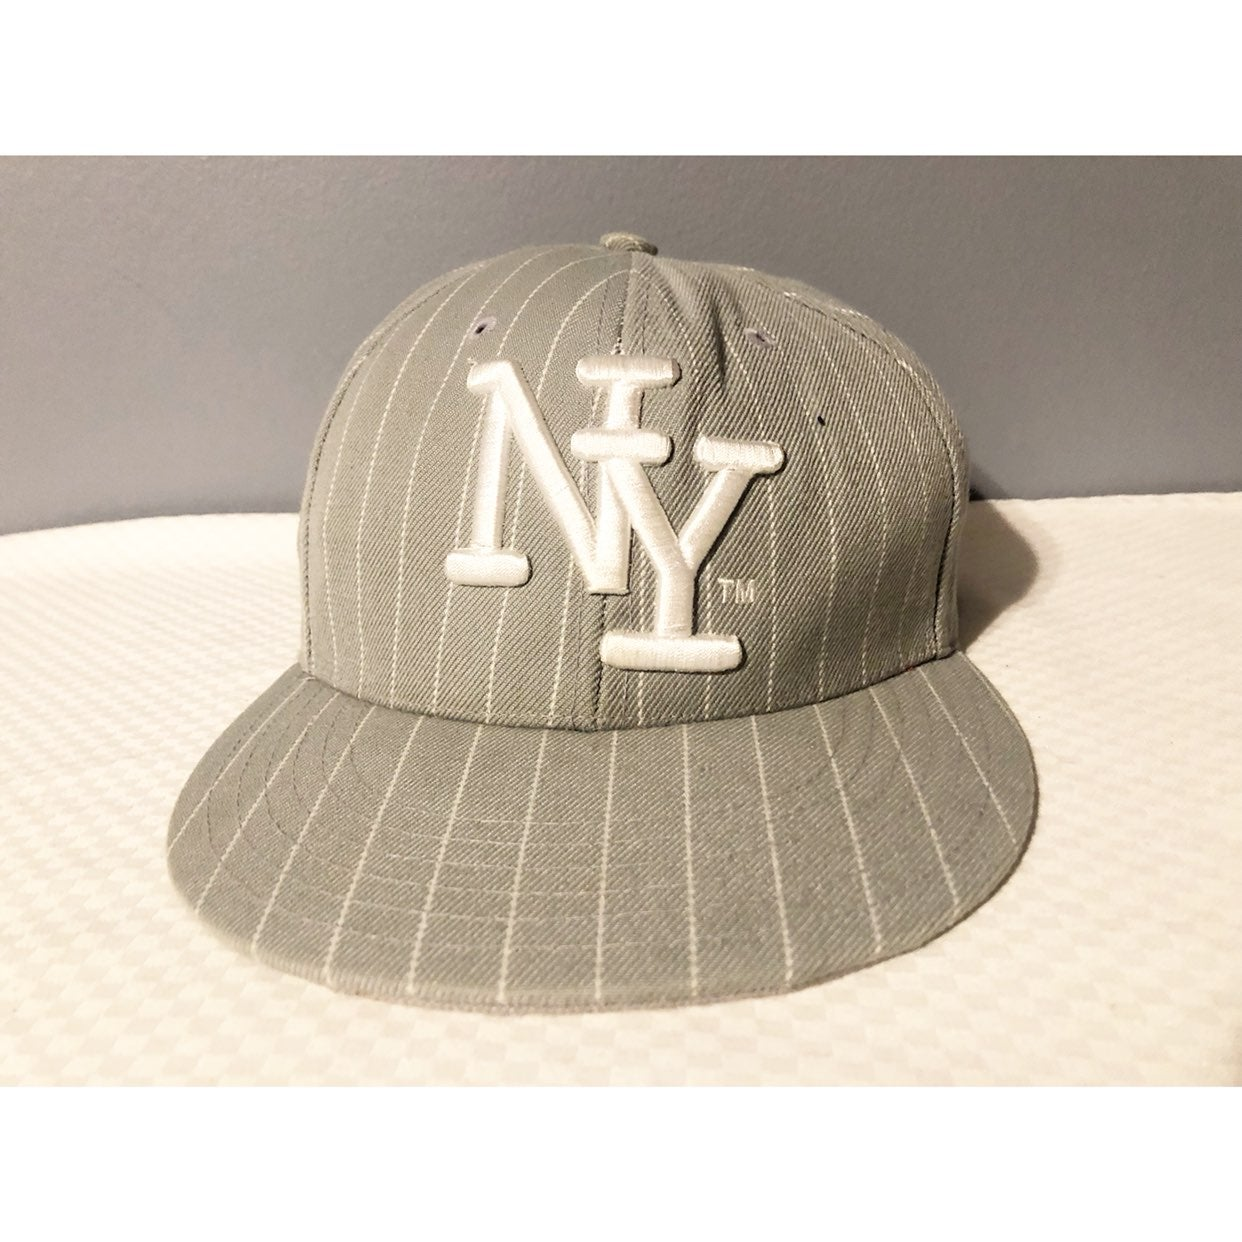 City Hunter New York Fitted Hat XL 7 3/4